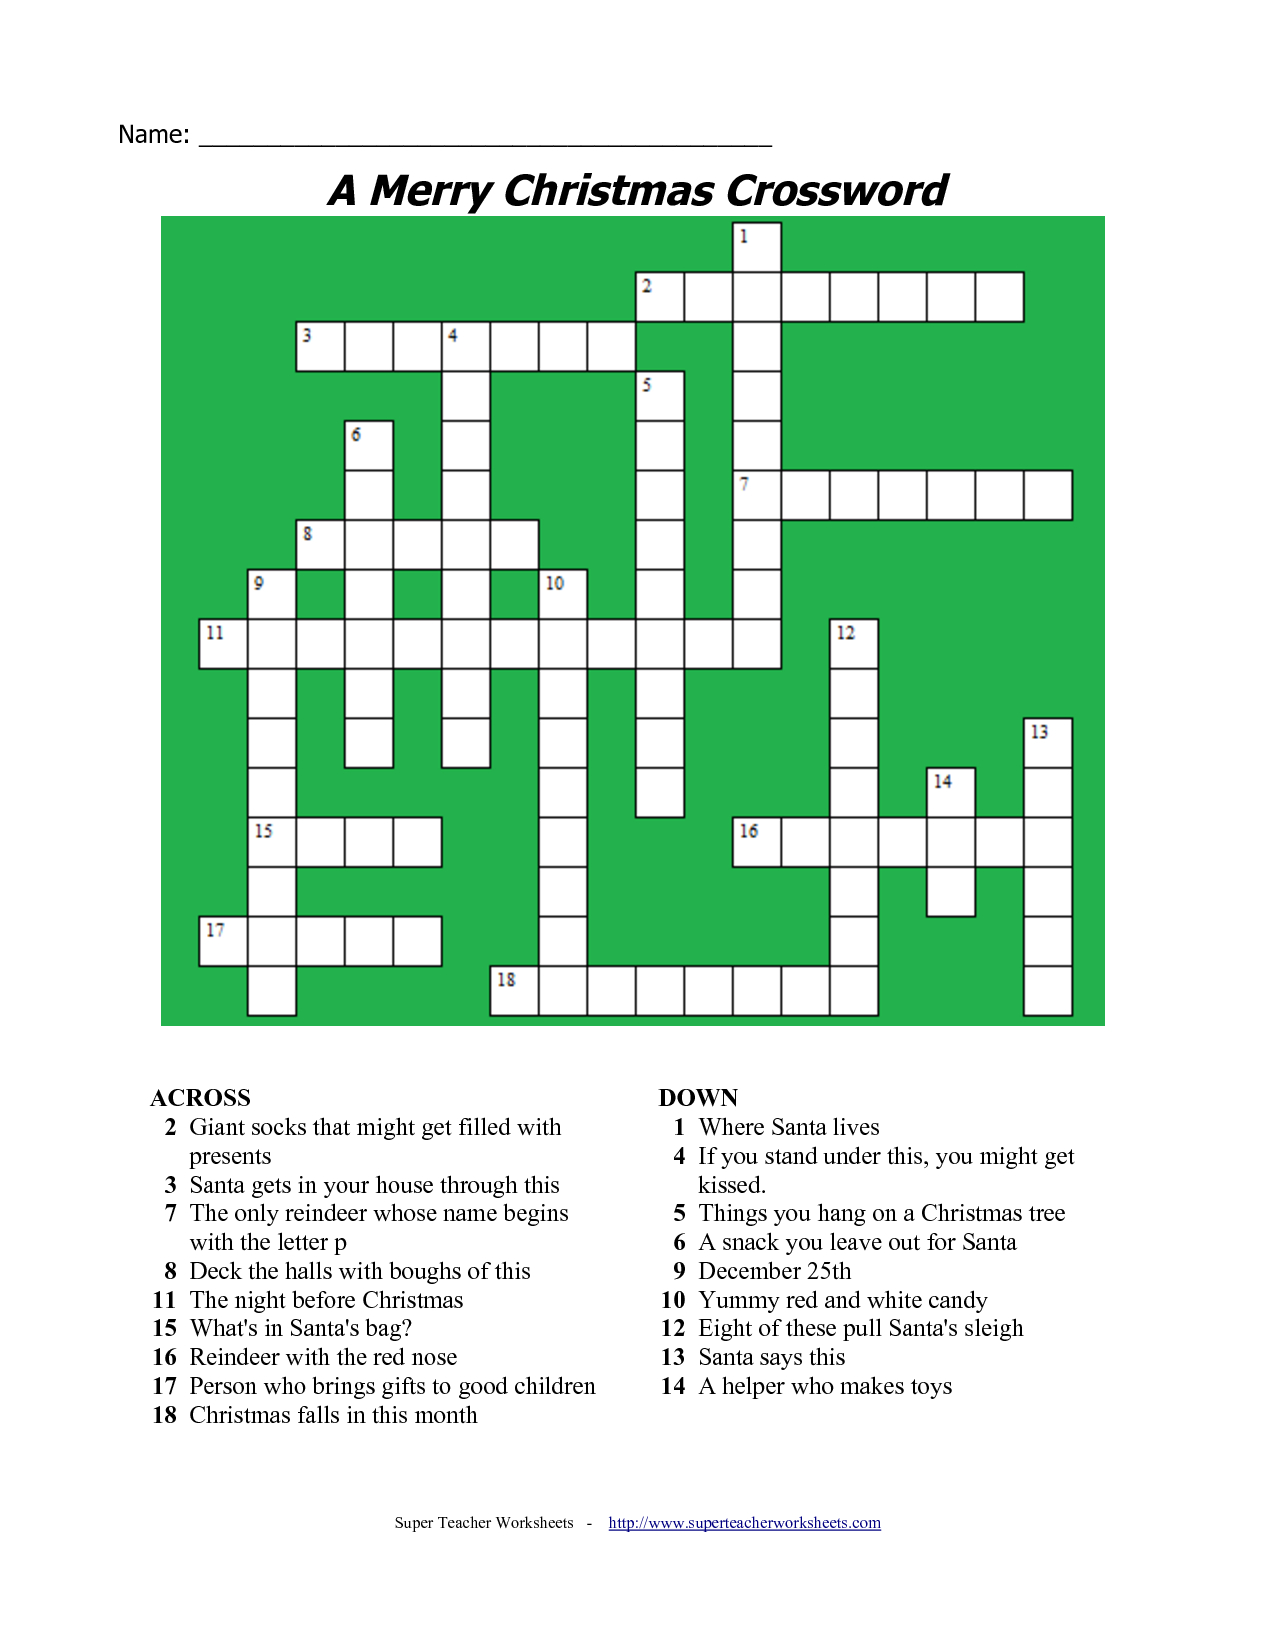 20 Fun Printable Christmas Crossword Puzzles | Kittybabylove - Printable Holiday Crossword Puzzles